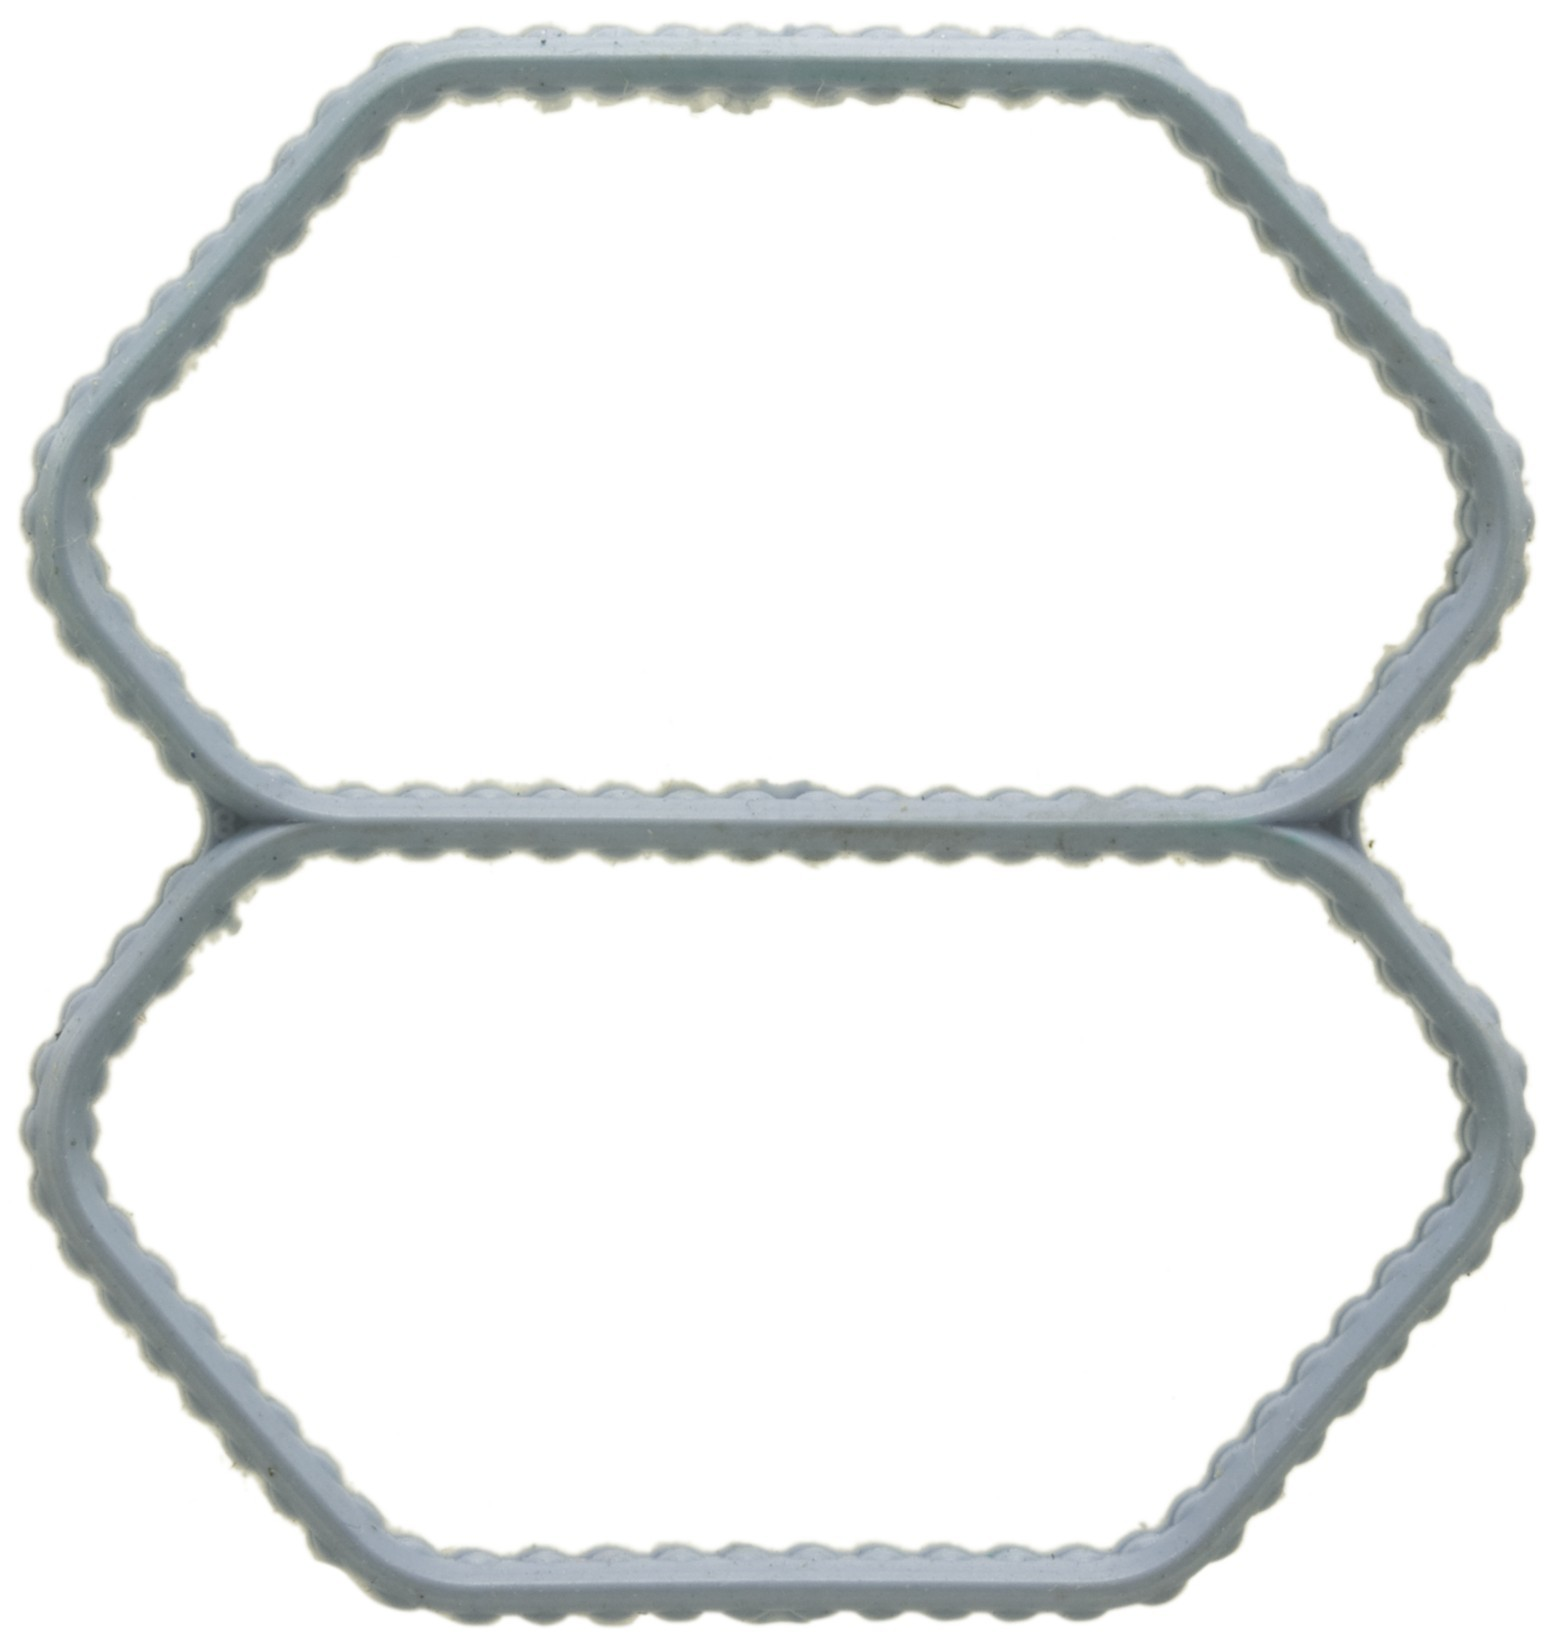 AIRTEX ENG. MGMT. SYSTEMS - Fuel Injection Idle Air Control Valve Gasket - AEM 3J1023